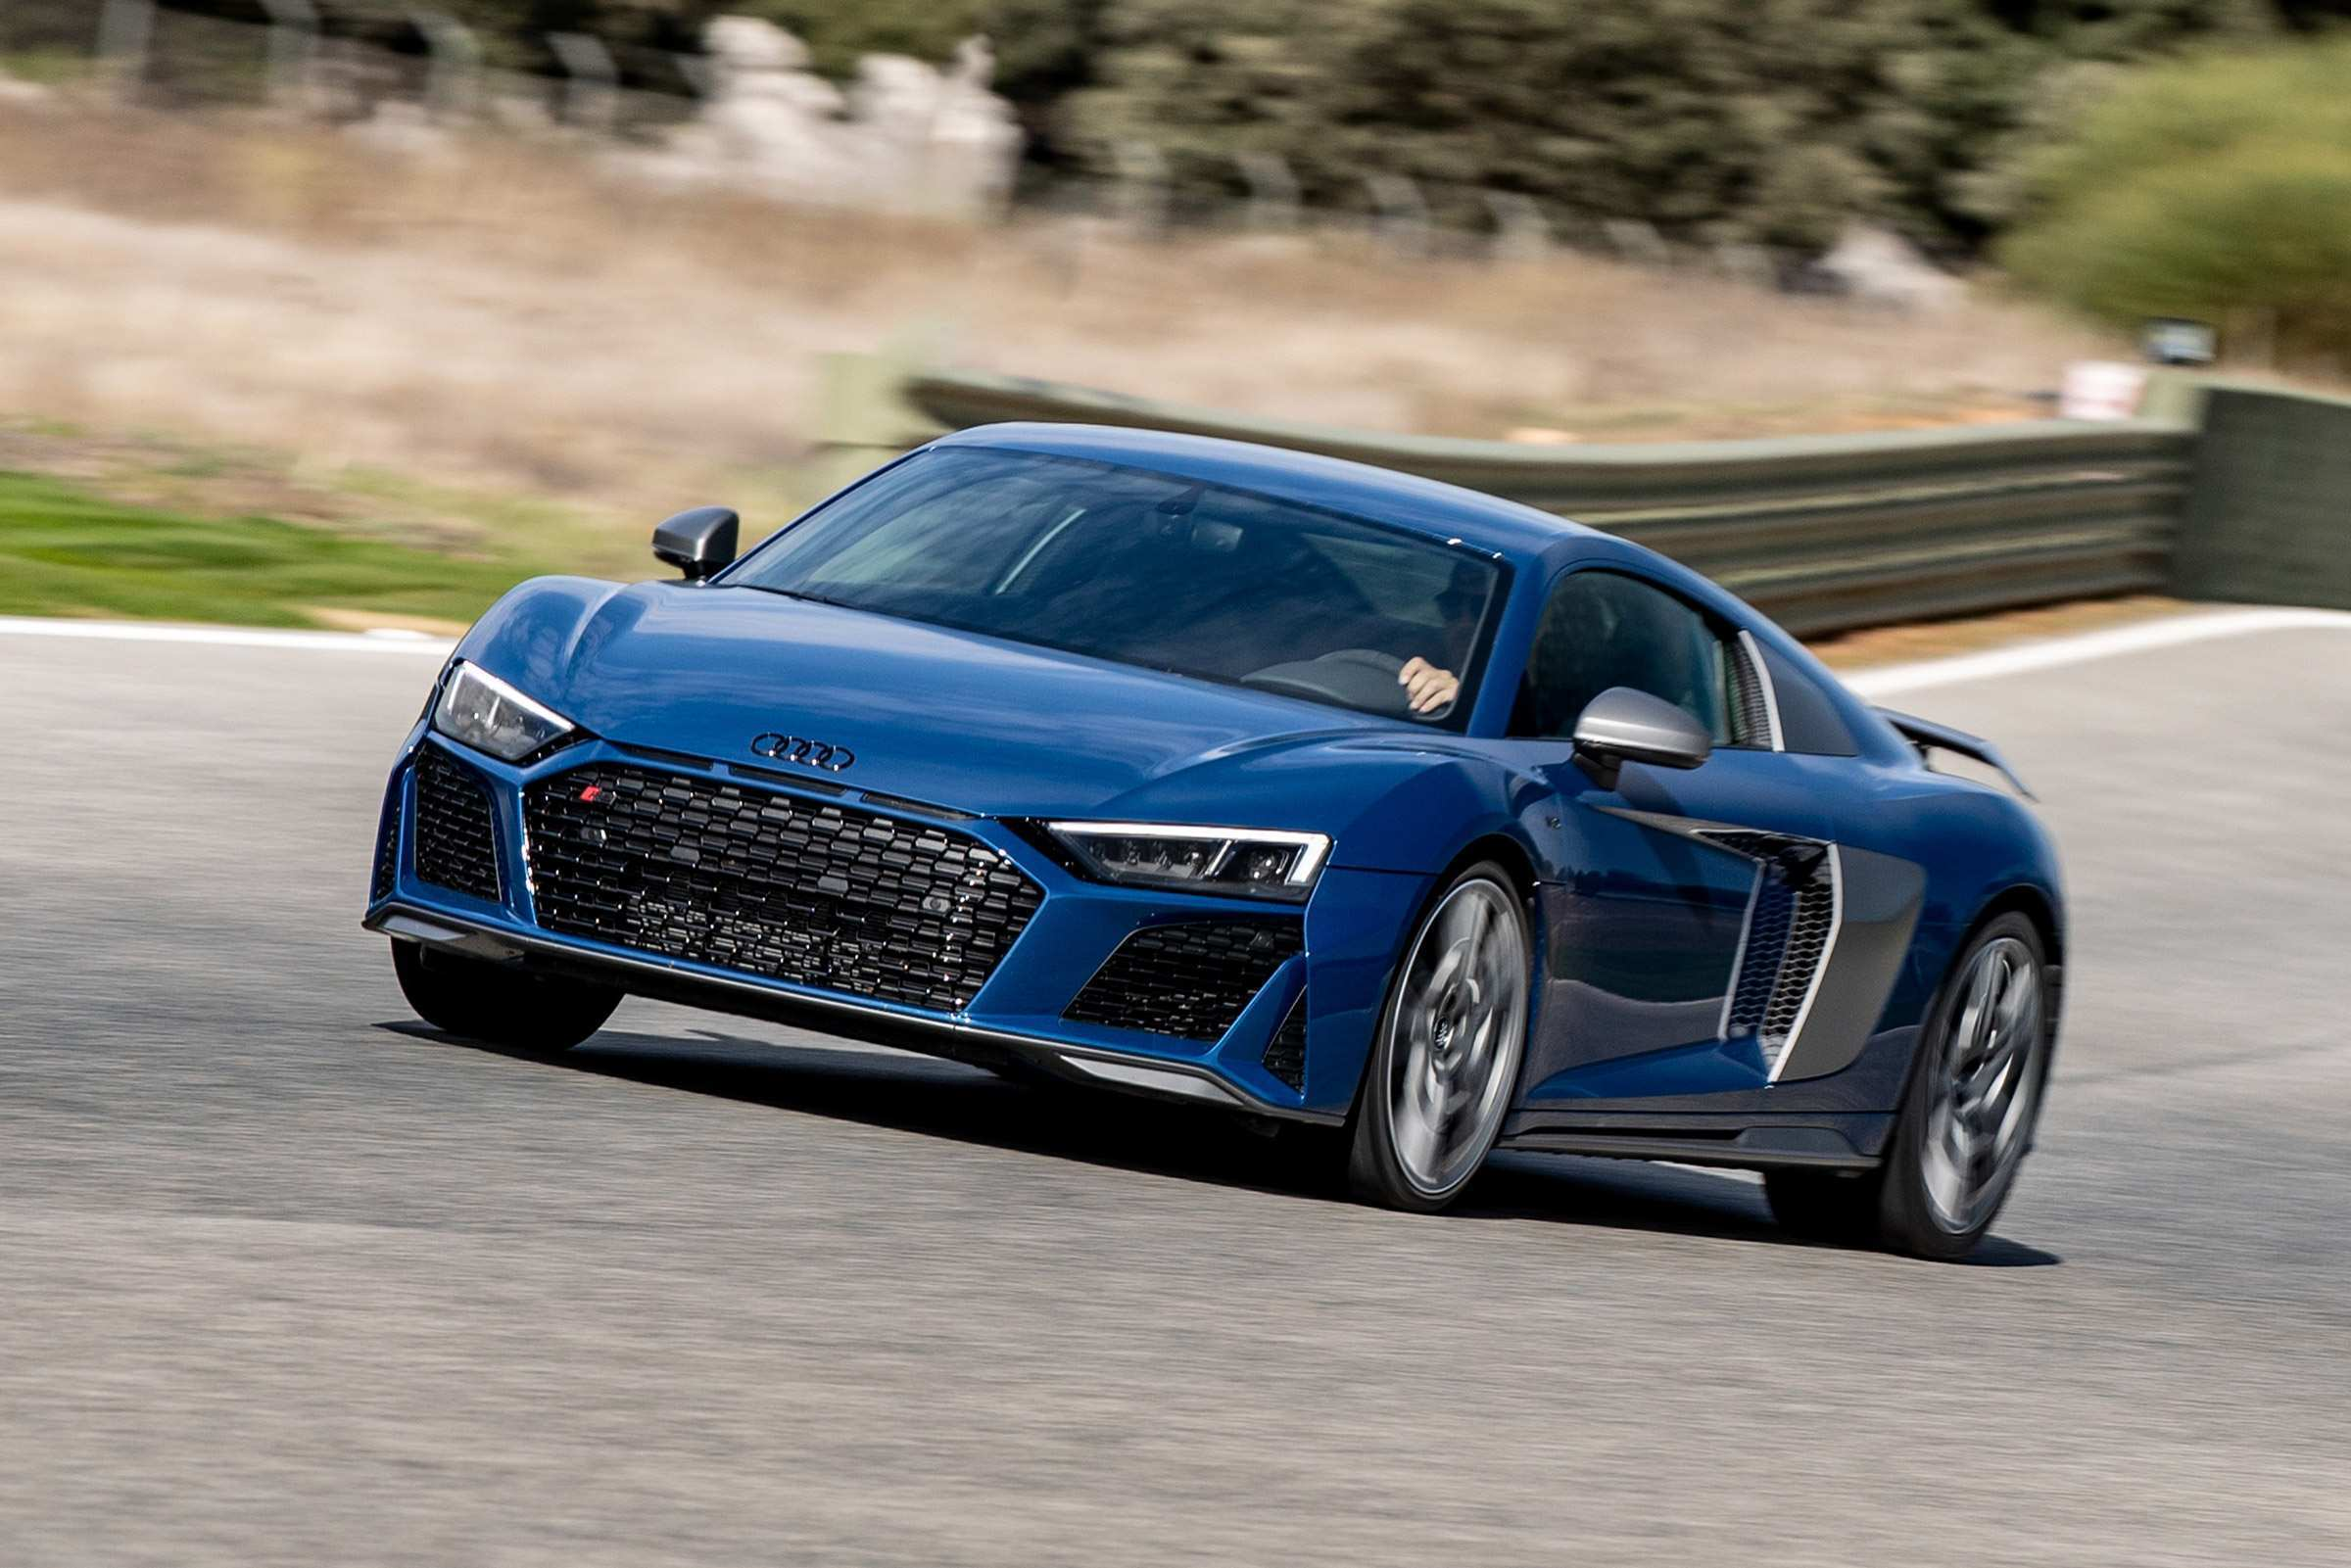 19 All New The R8 Audi 2019 Review And Price Picture for The R8 Audi 2019 Review And Price